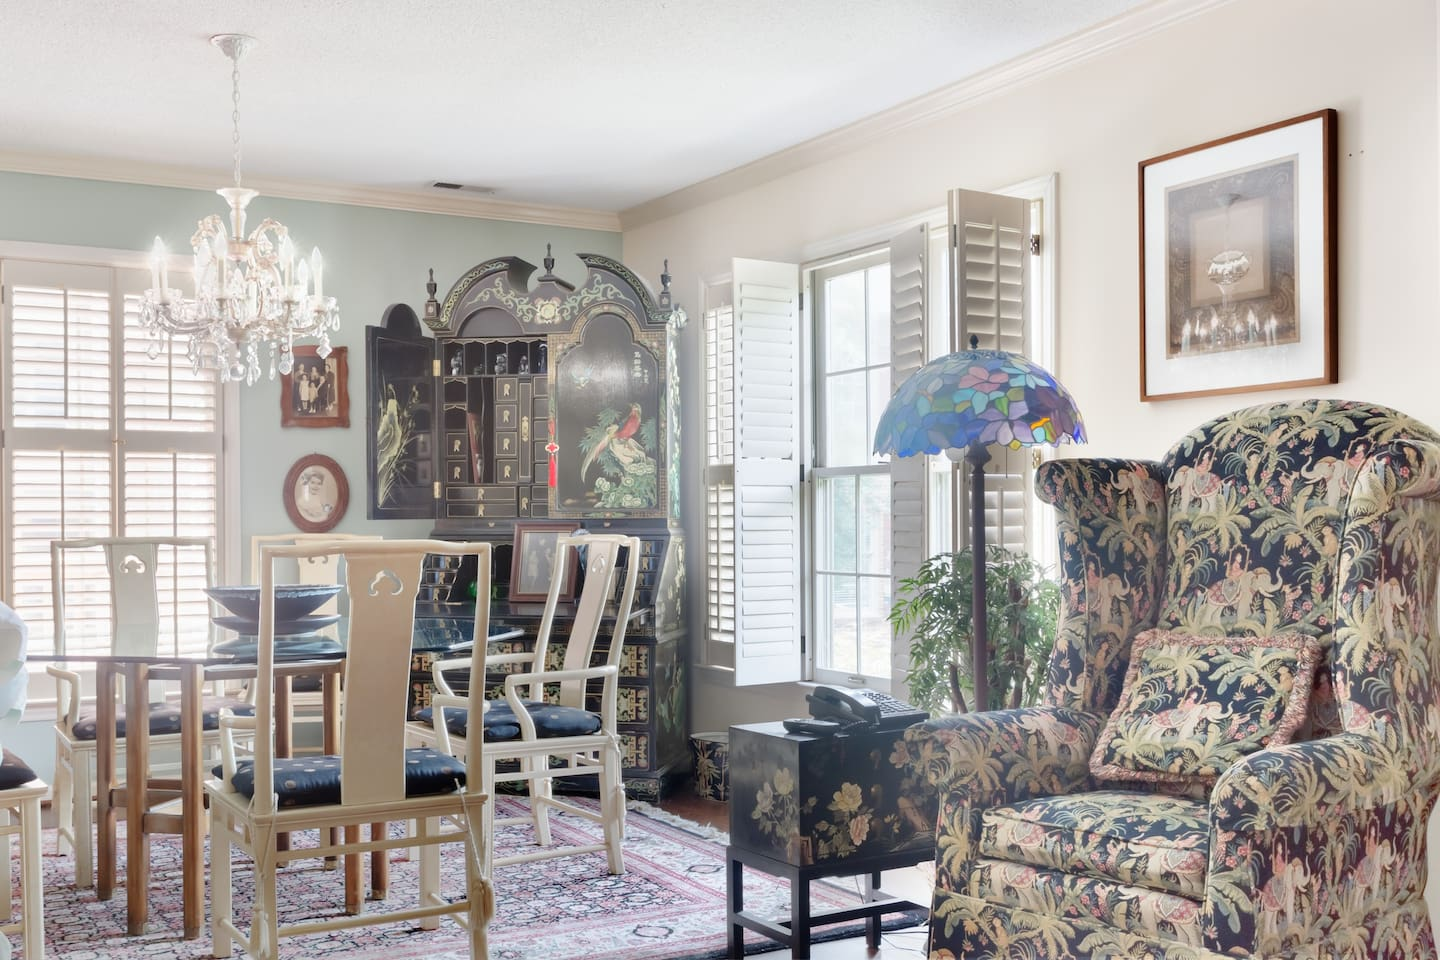 Luxurious Home w Antiques @ Art